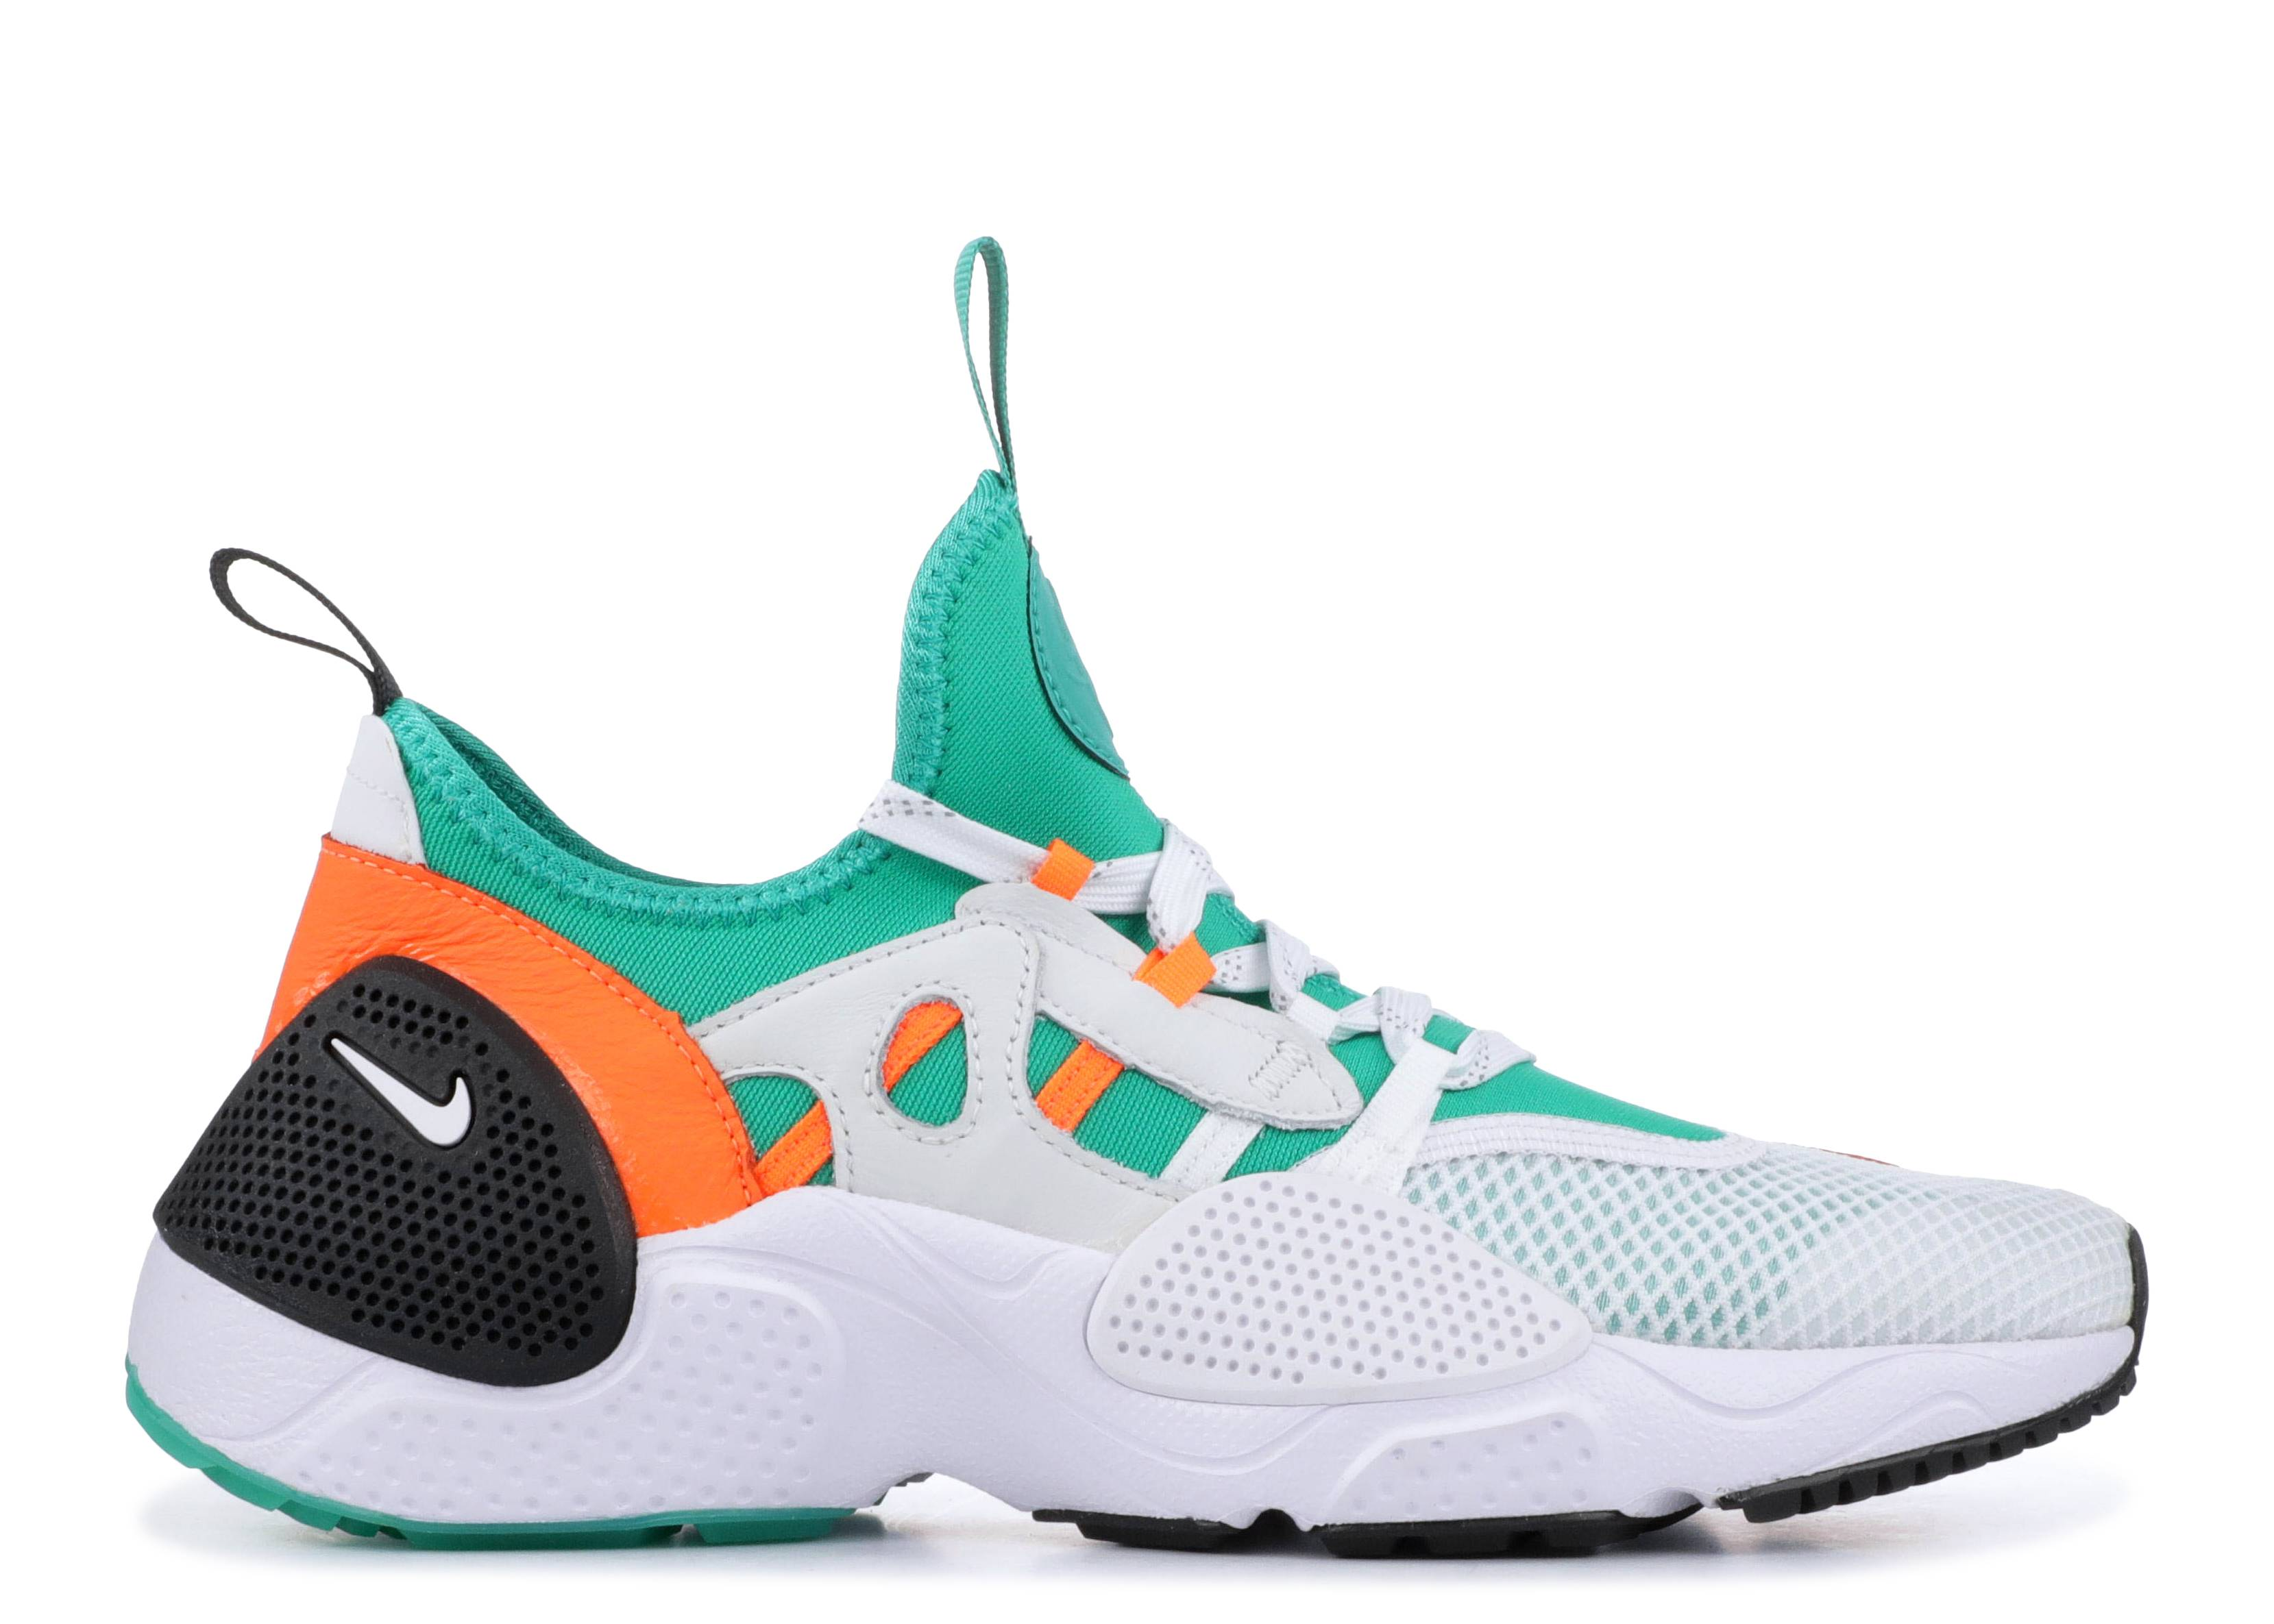 new concept 890c1 bd3d9 Nike Huarache Edge Txt Qs - Nike - bq5206 100 - white clear emerald total  orange   Flight Club